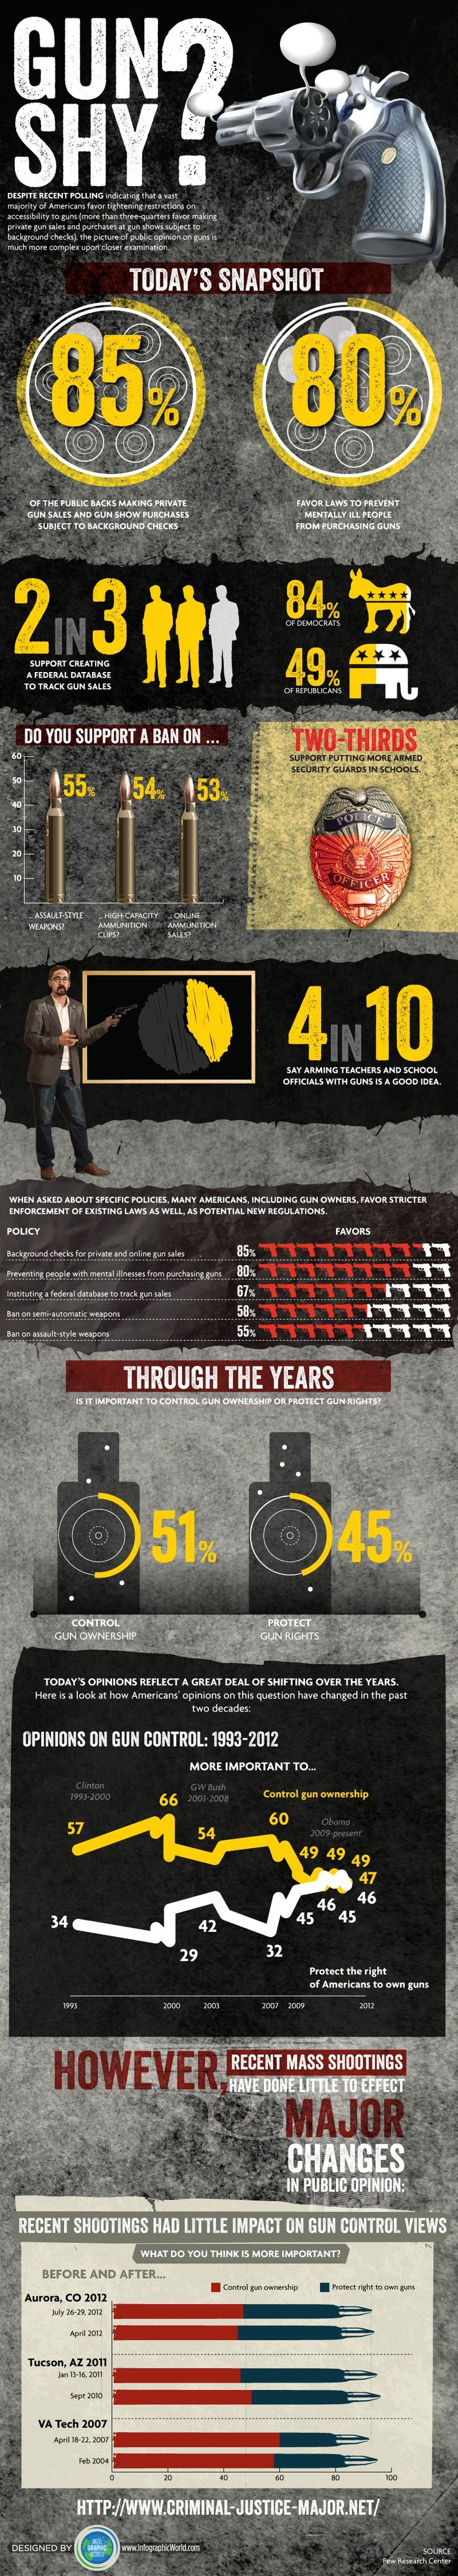 "Gun Shy? A Look at Public Opinion on Gun Ownership"" Image compliments of Criminal Justice Major Guide thank you!"